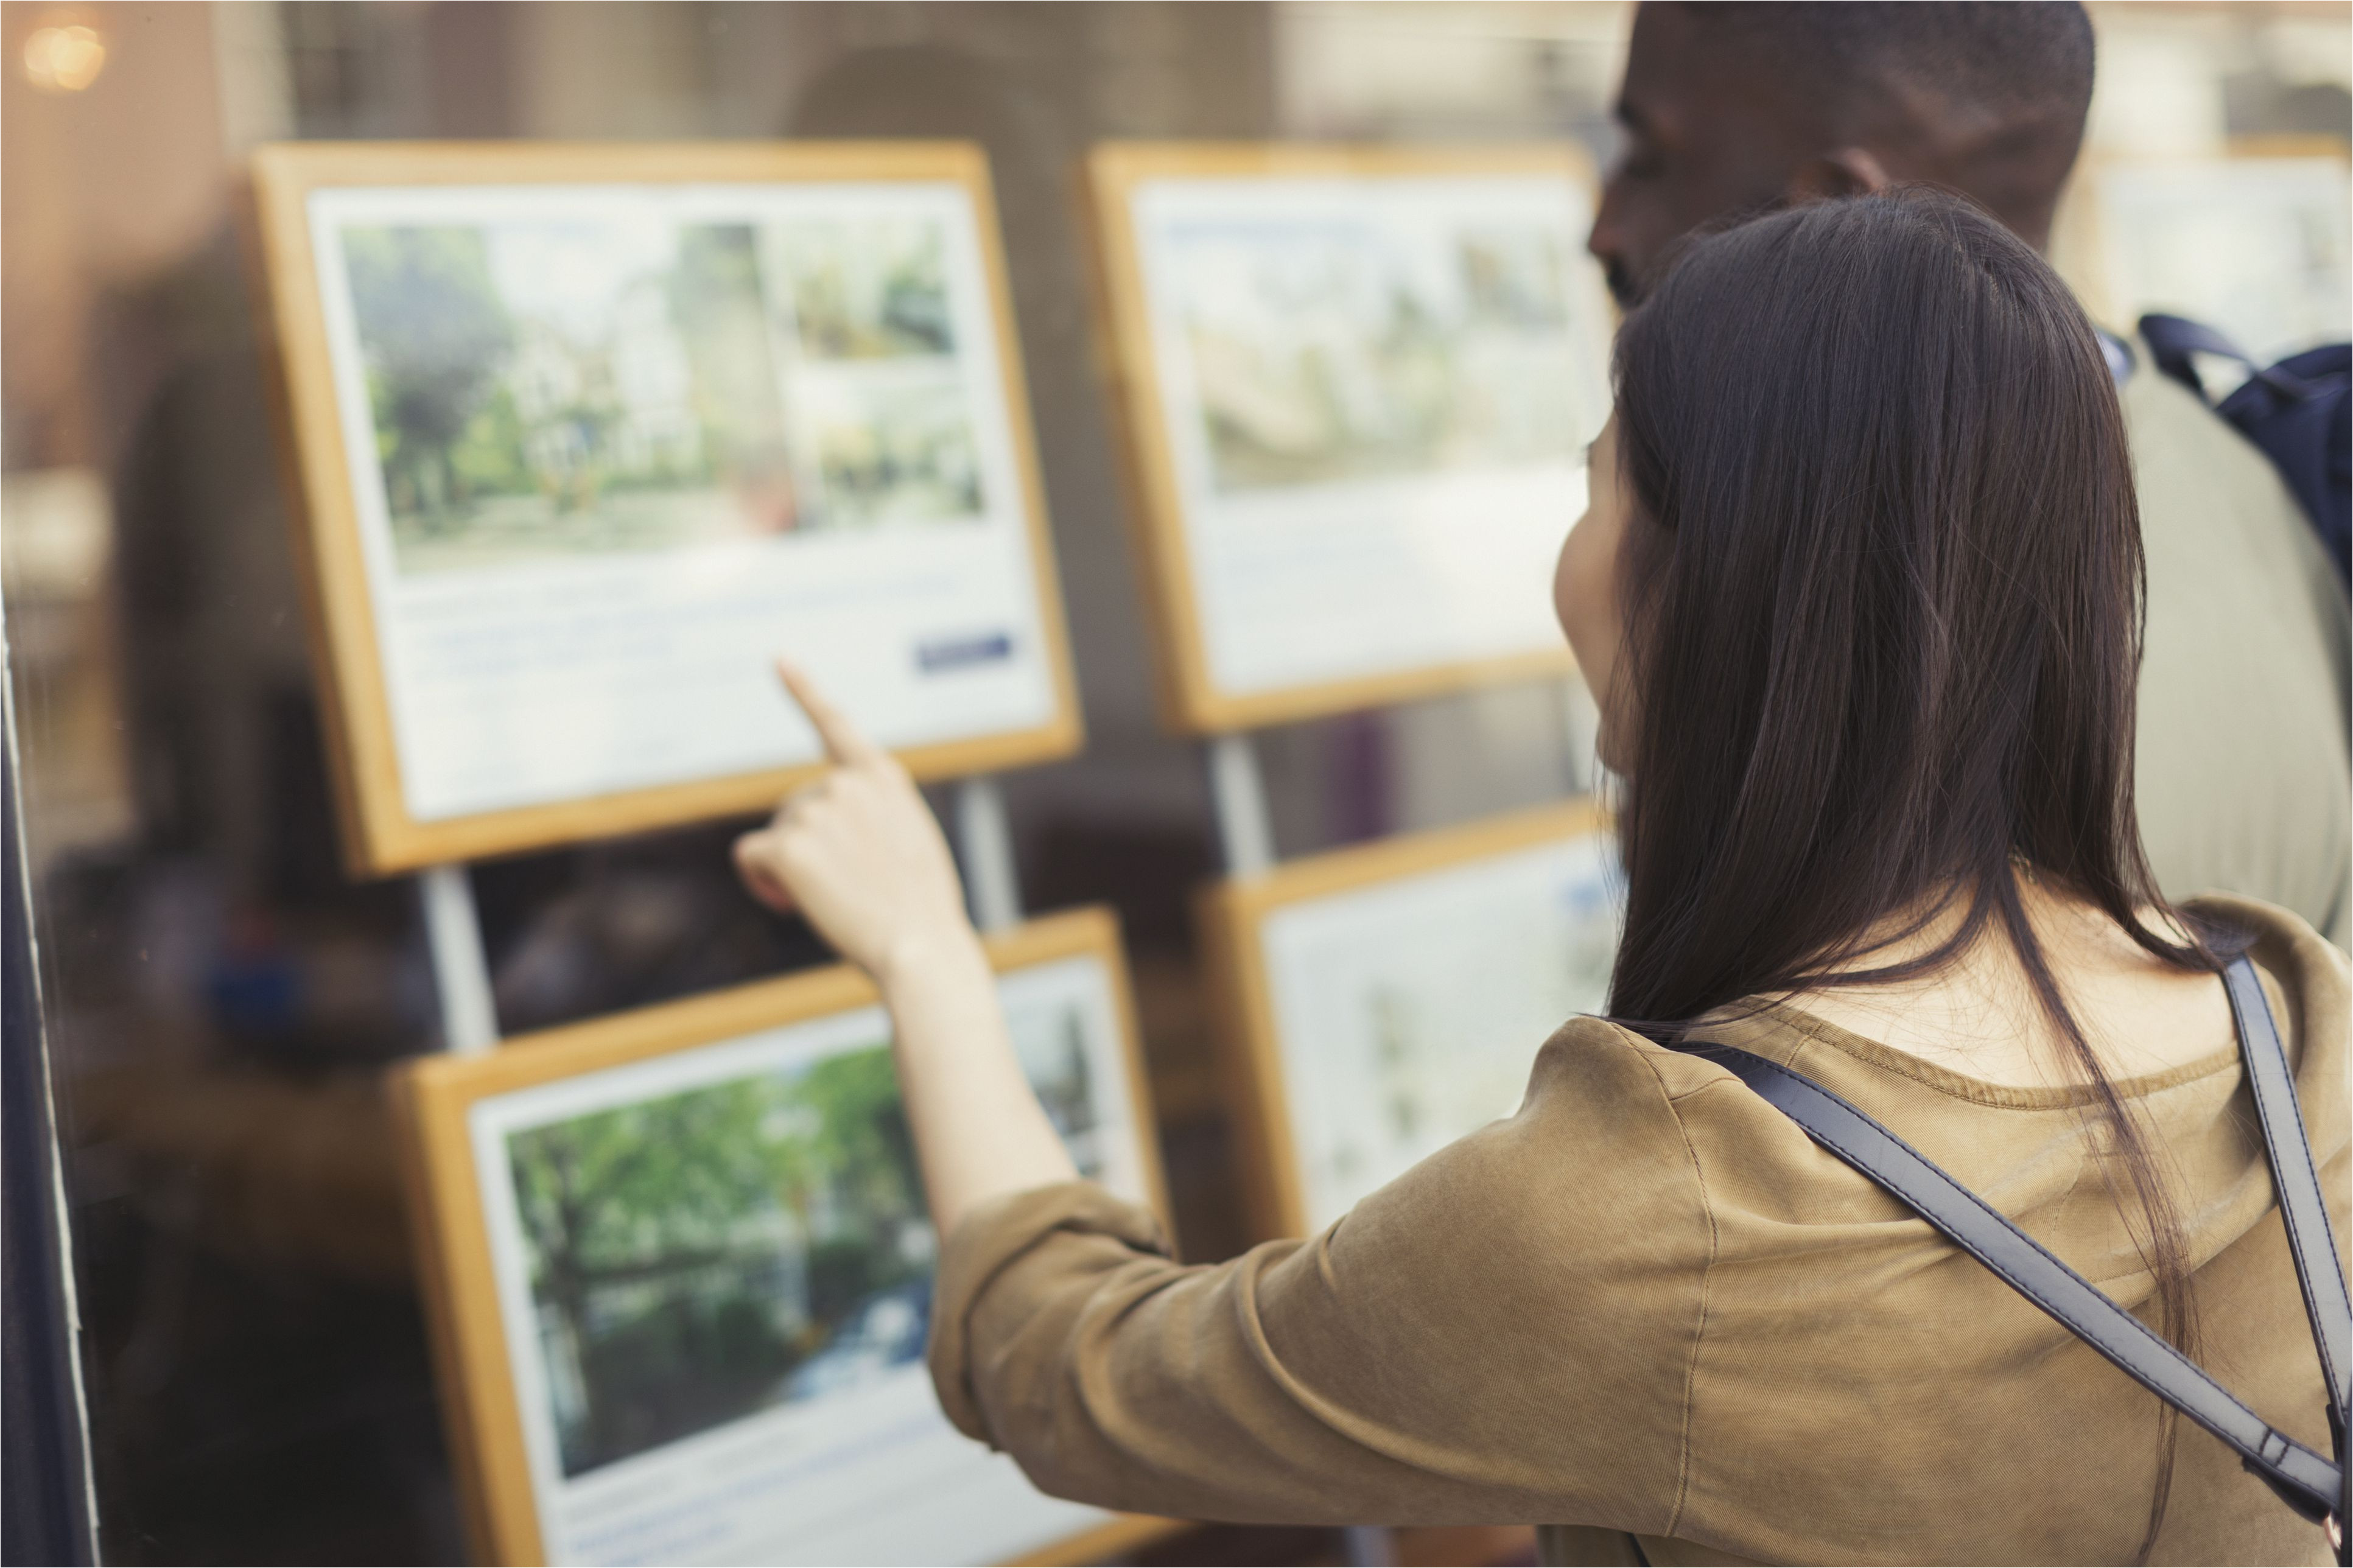 young couple browsing real estate listings at storefront 906503752 5a9e16593de423003731405a jpg